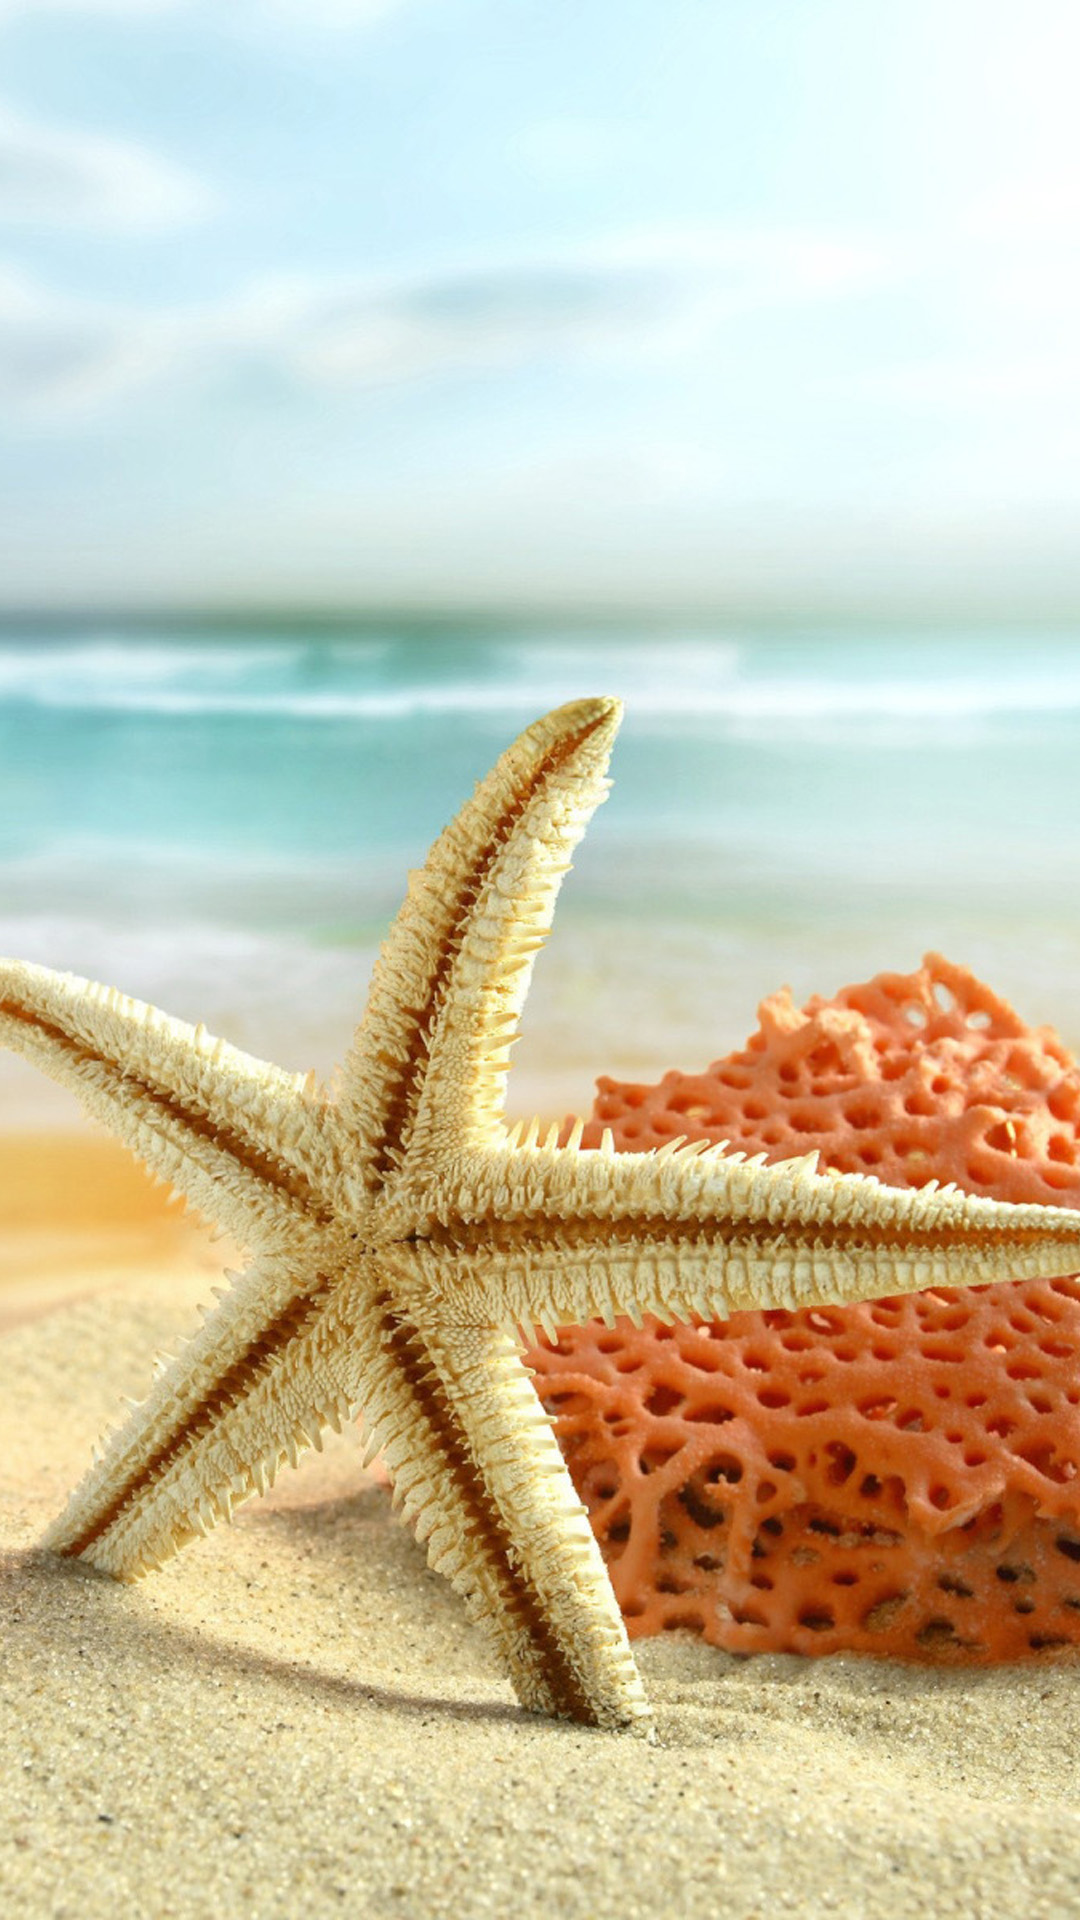 Starfish Wallpapers High Quality Download Free